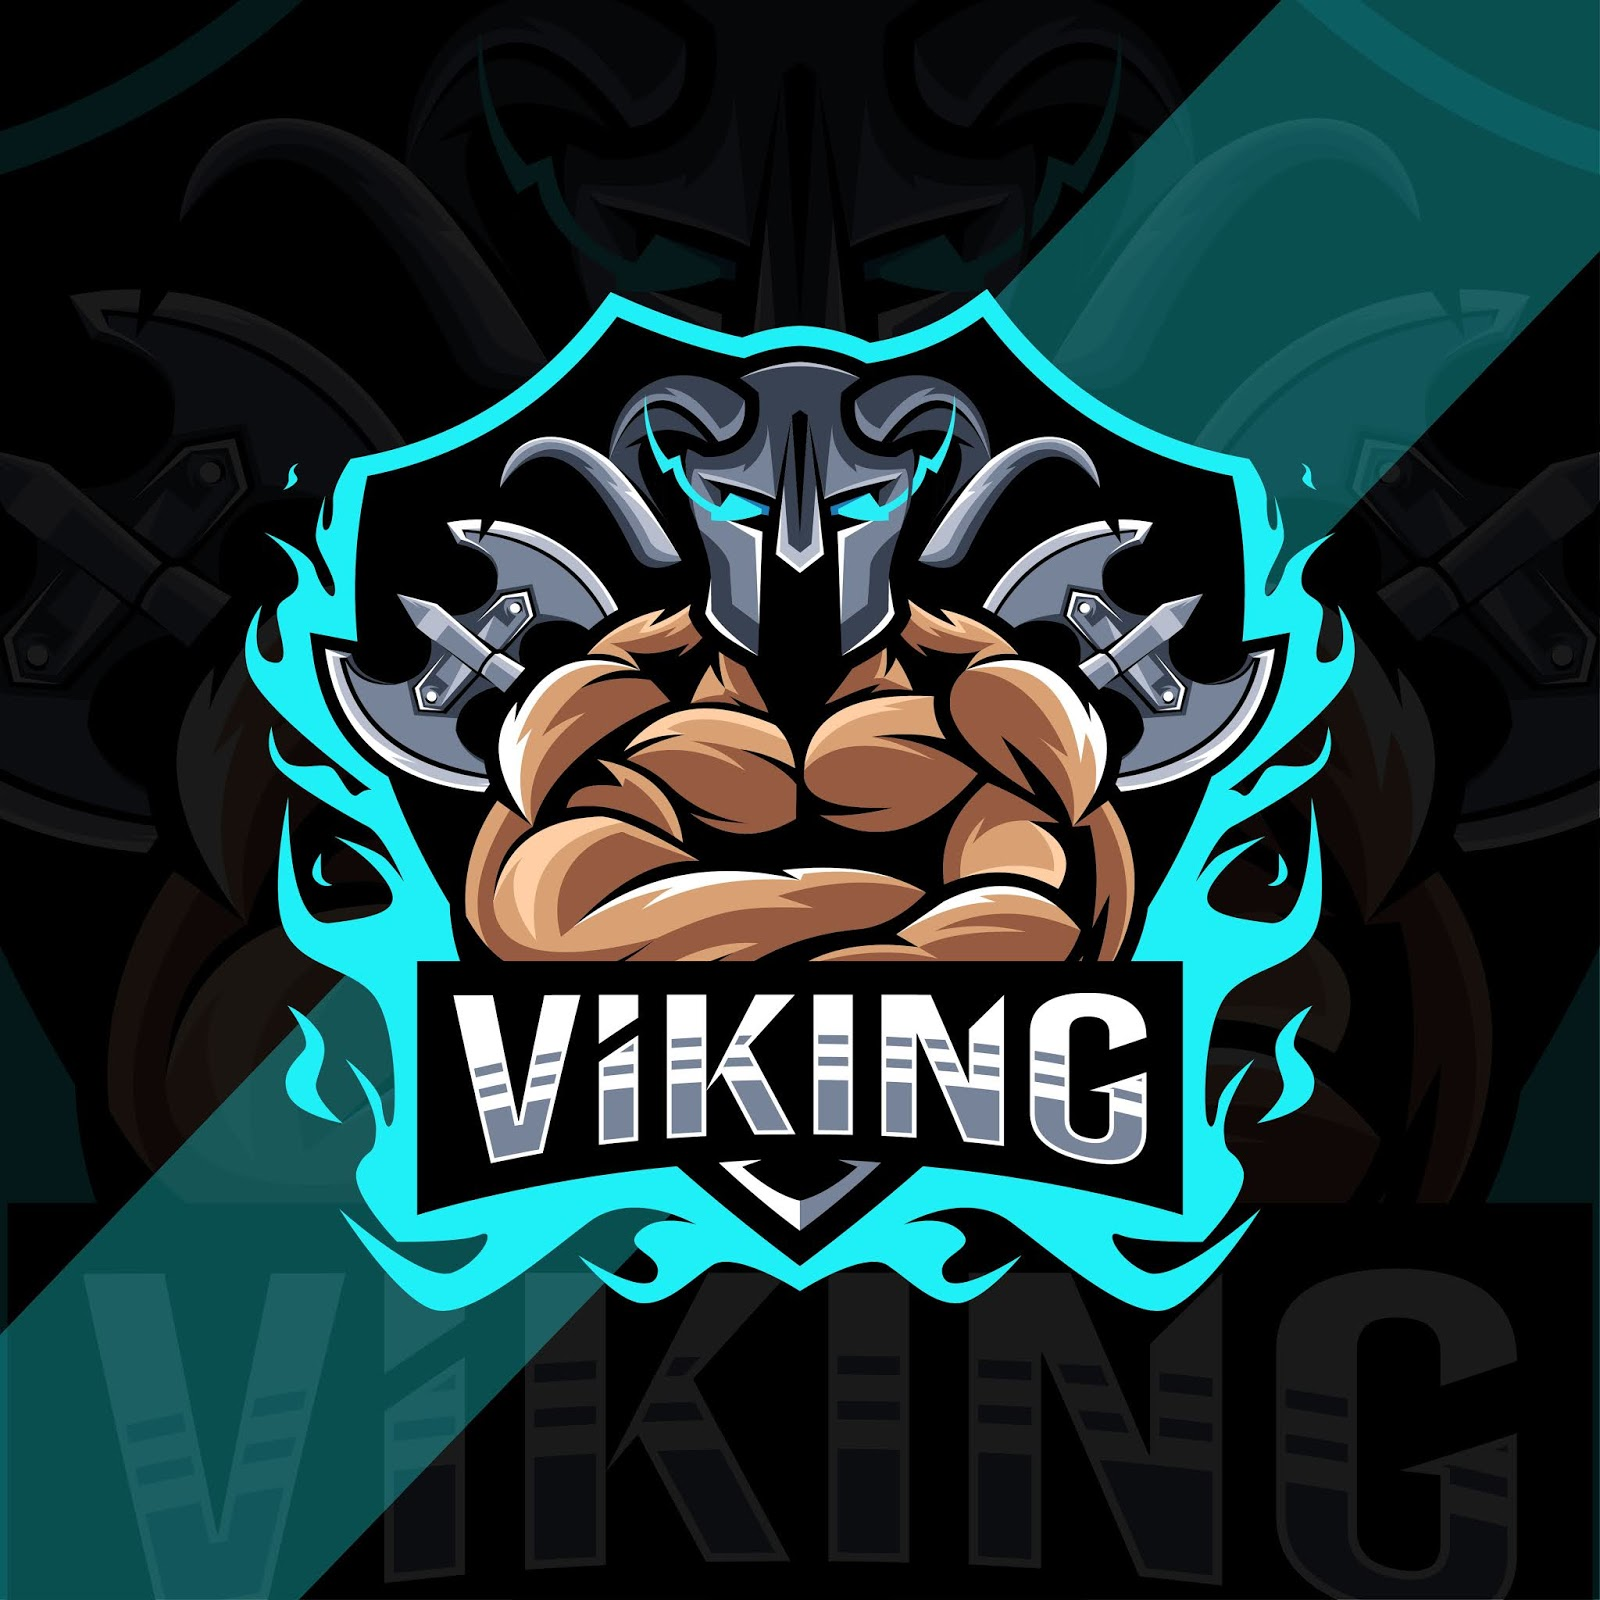 Viking Mascot Logo Template Design Free Download Vector CDR, AI, EPS and PNG Formats